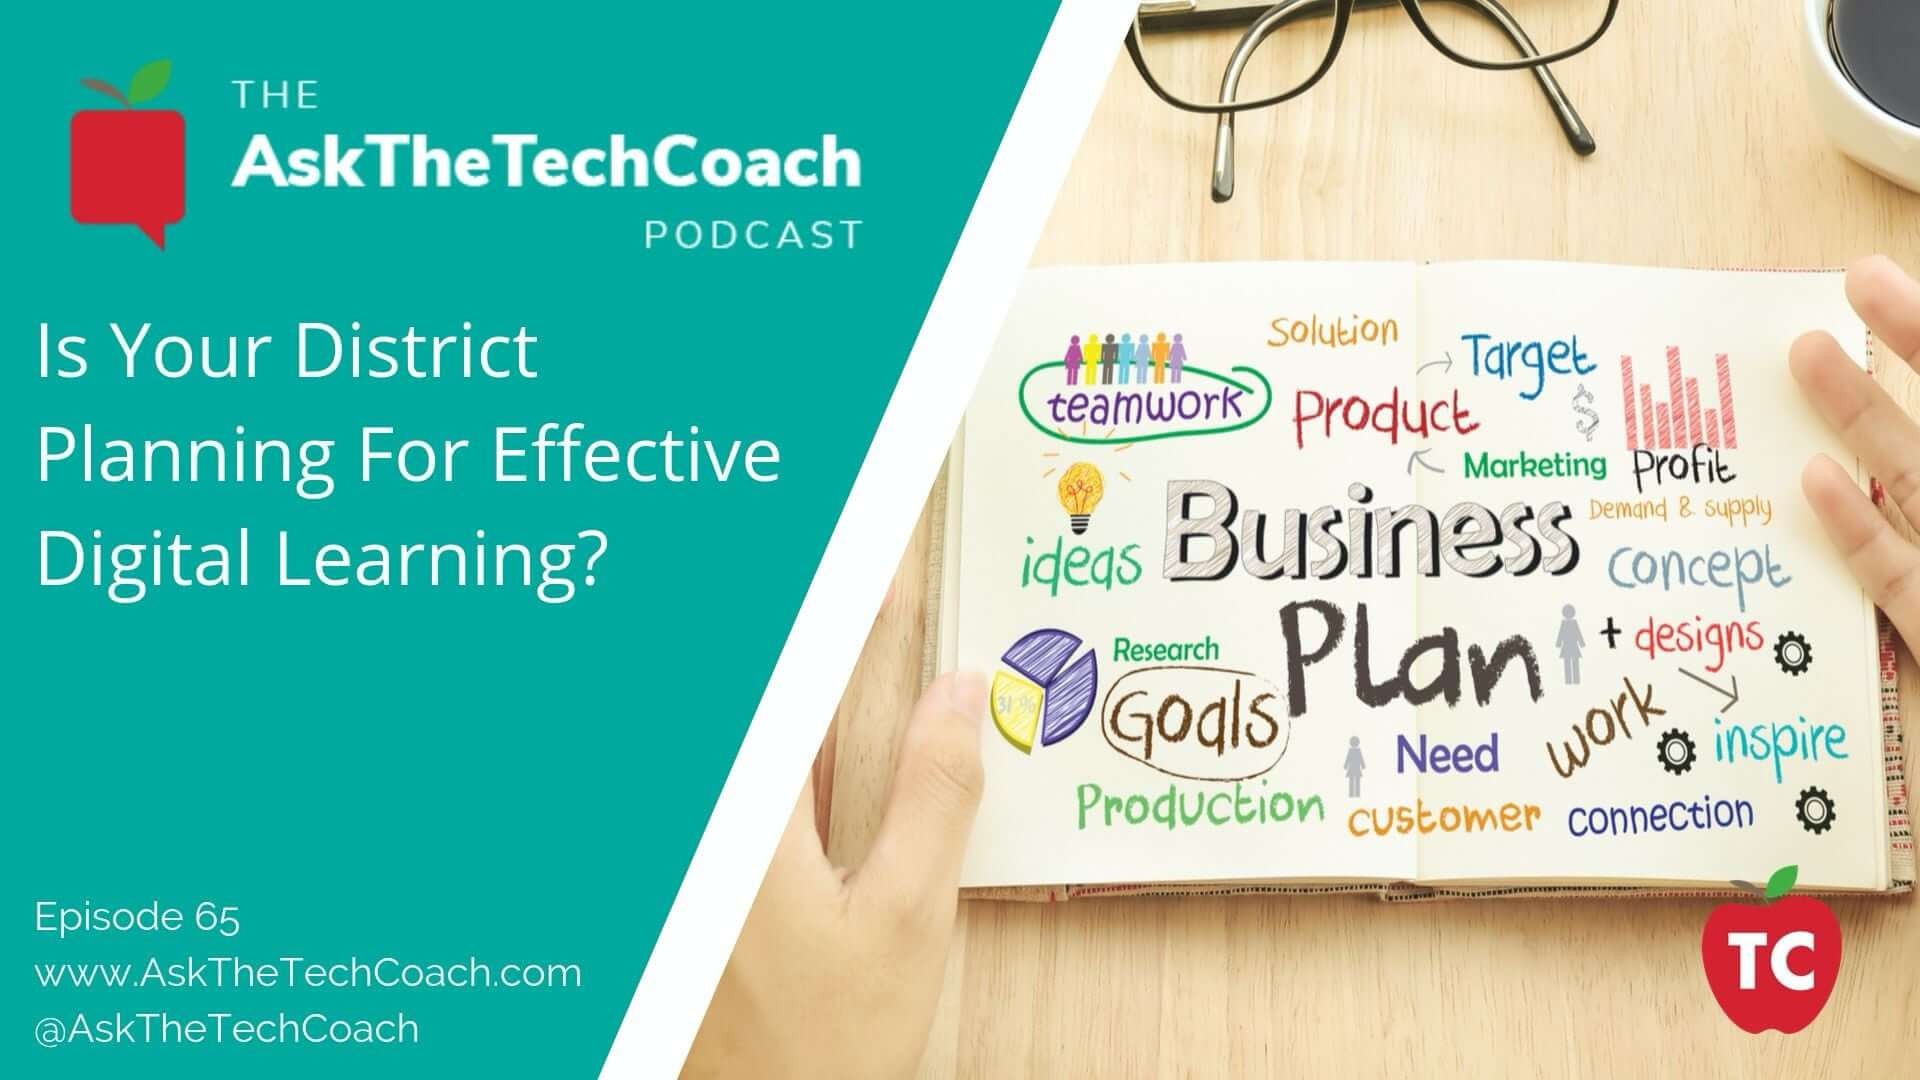 Planning For Effective Digital Learning